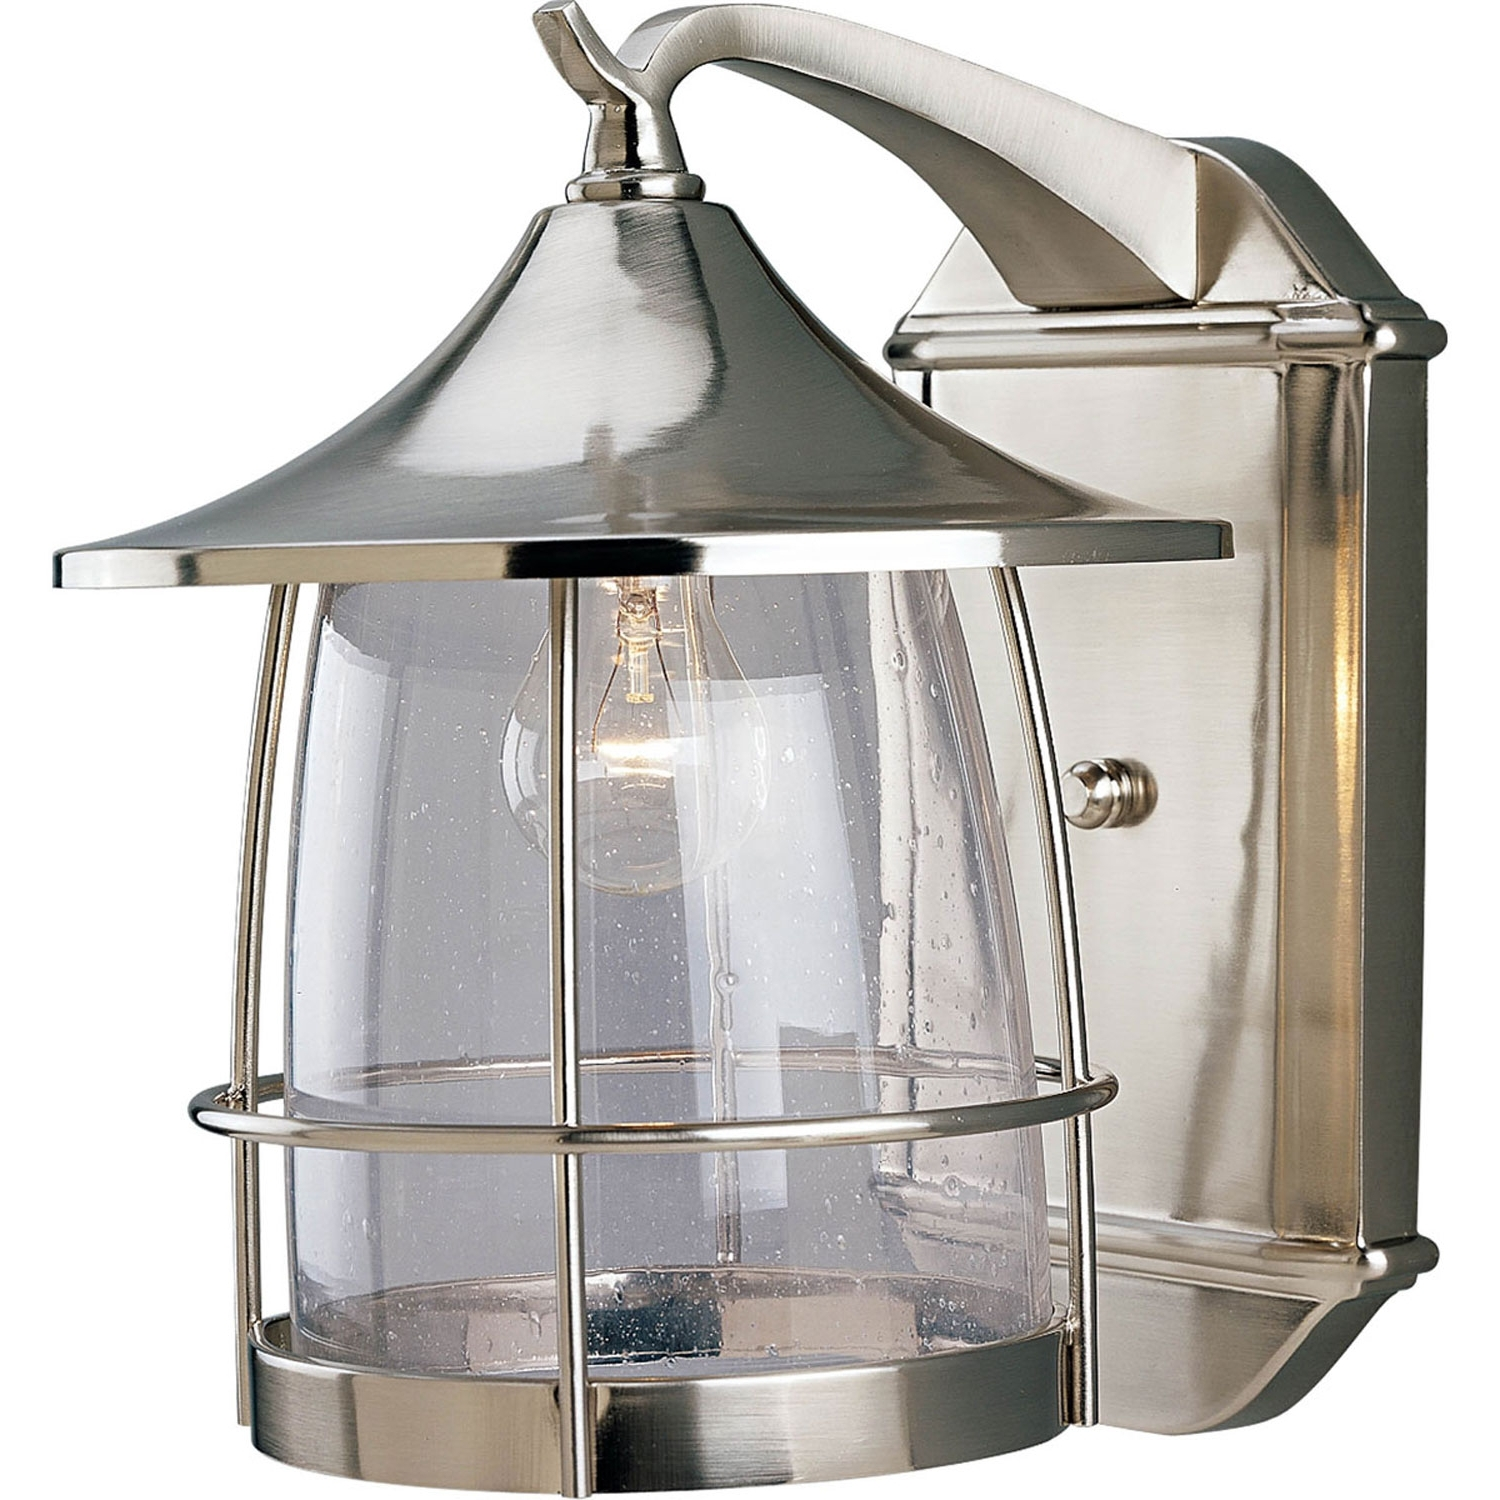 Brushed Nickel Outdoor Wall Lighting Inside Most Recent P5764 09: Prairie Brushed Nickel One Light Outdoor Wall Lantern (View 13 of 20)